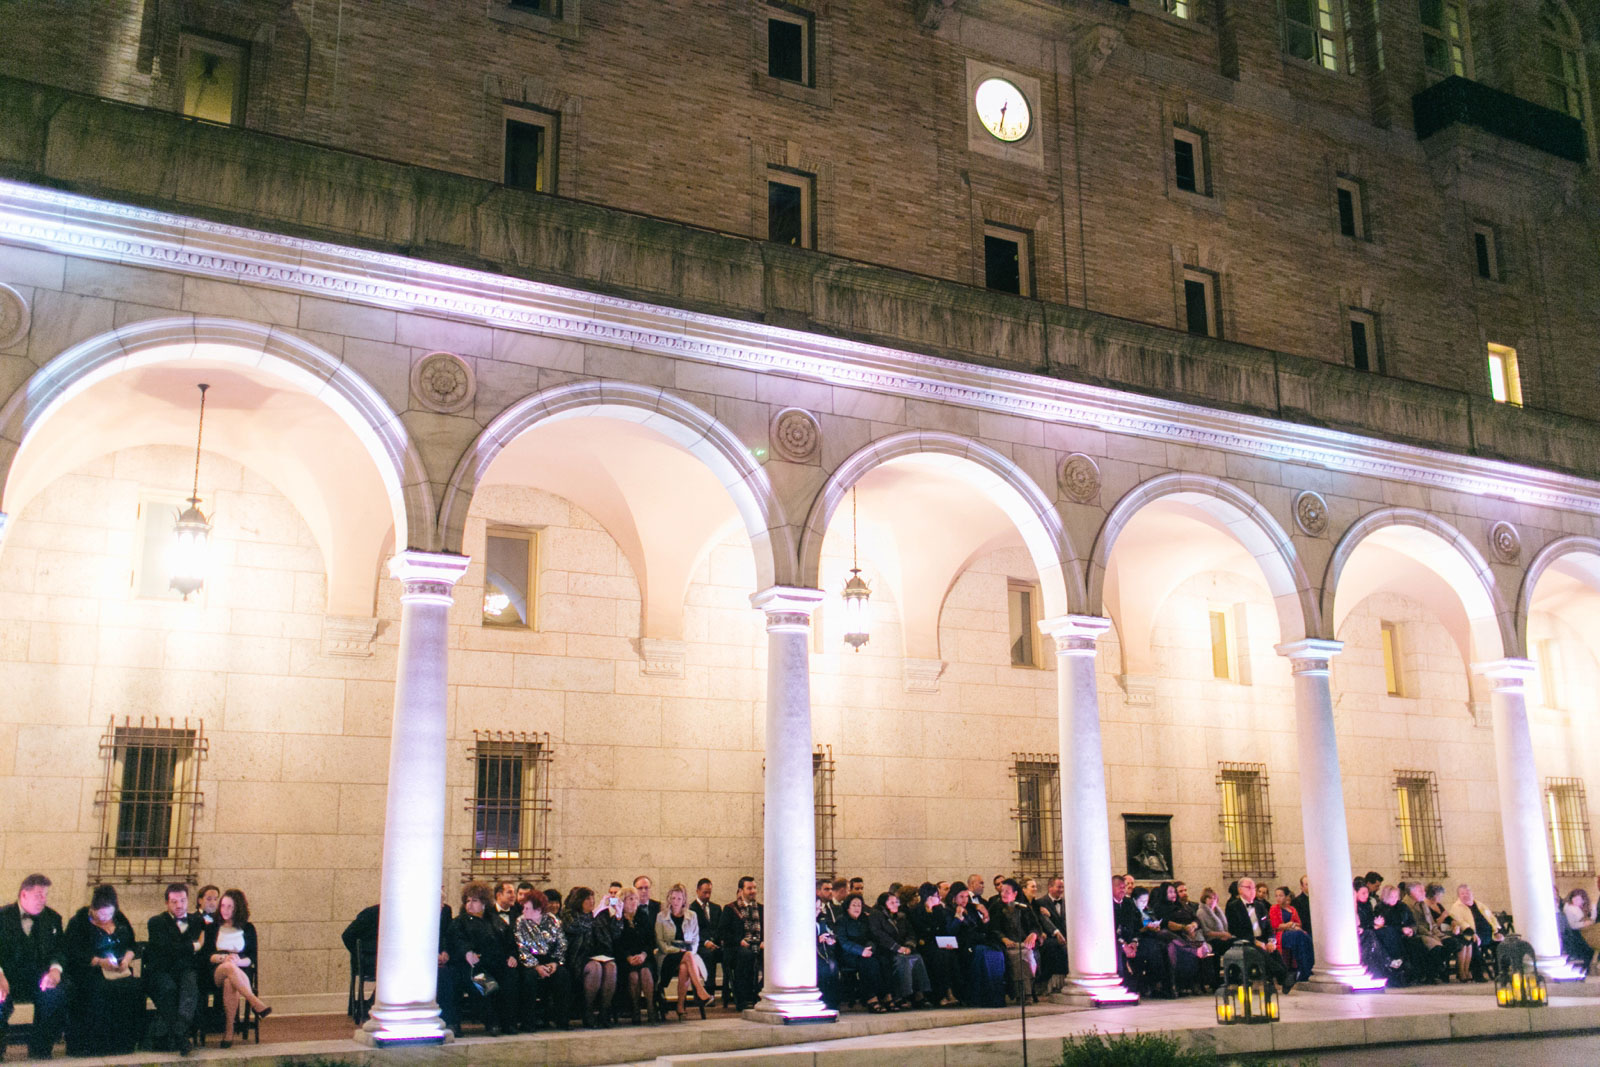 Outdoor wedding ceremony at Boston public library at night with pillars and stone architecture